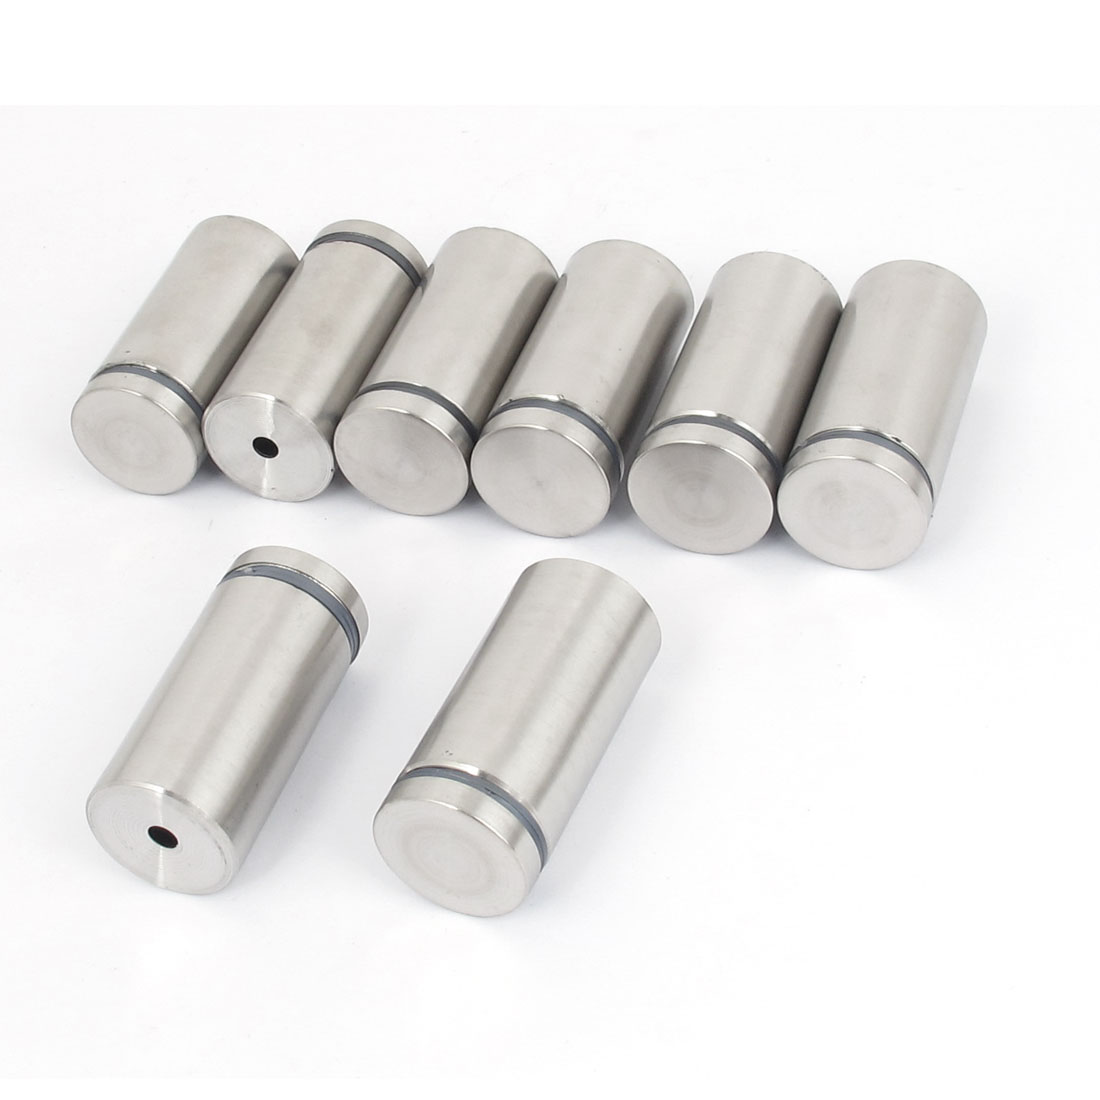 25mm x 50mm Stainless Steel Advertising Frameless Glass Standoff Pin Clamp 8pcs